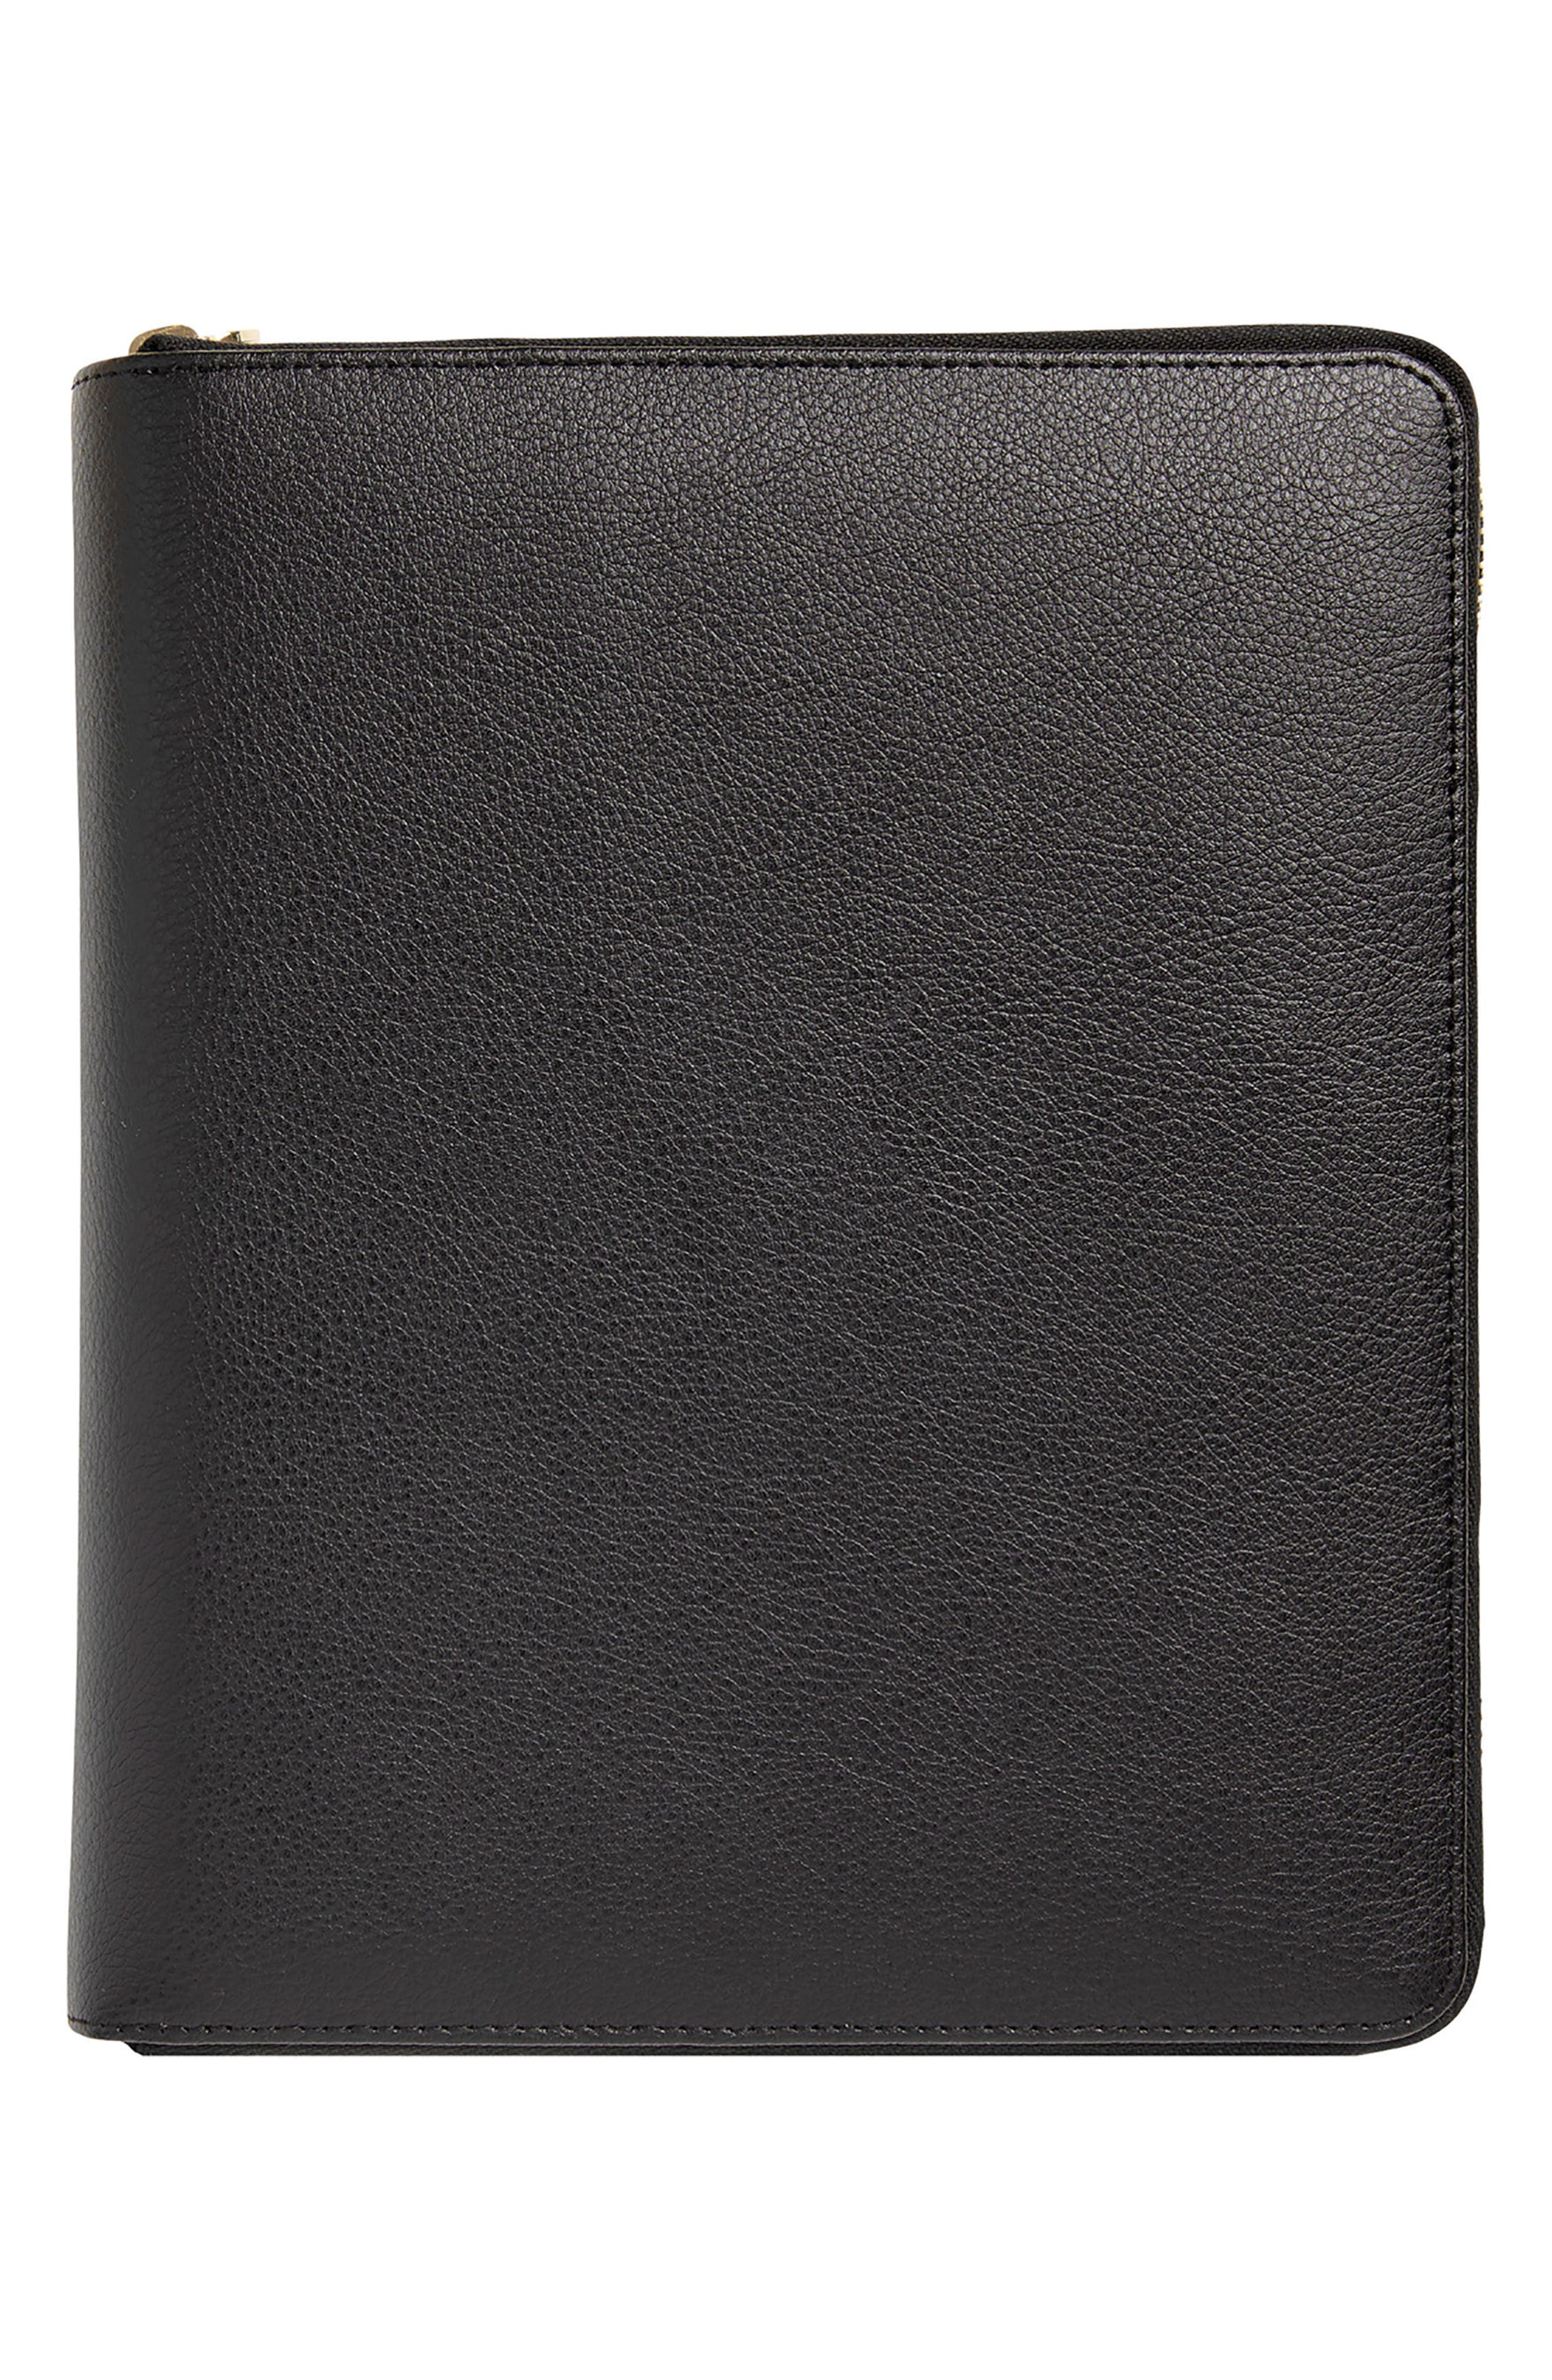 Zip-Around Leather 18-Month Perpetual Planner,                             Main thumbnail 1, color,                             JET BLACK LARGE